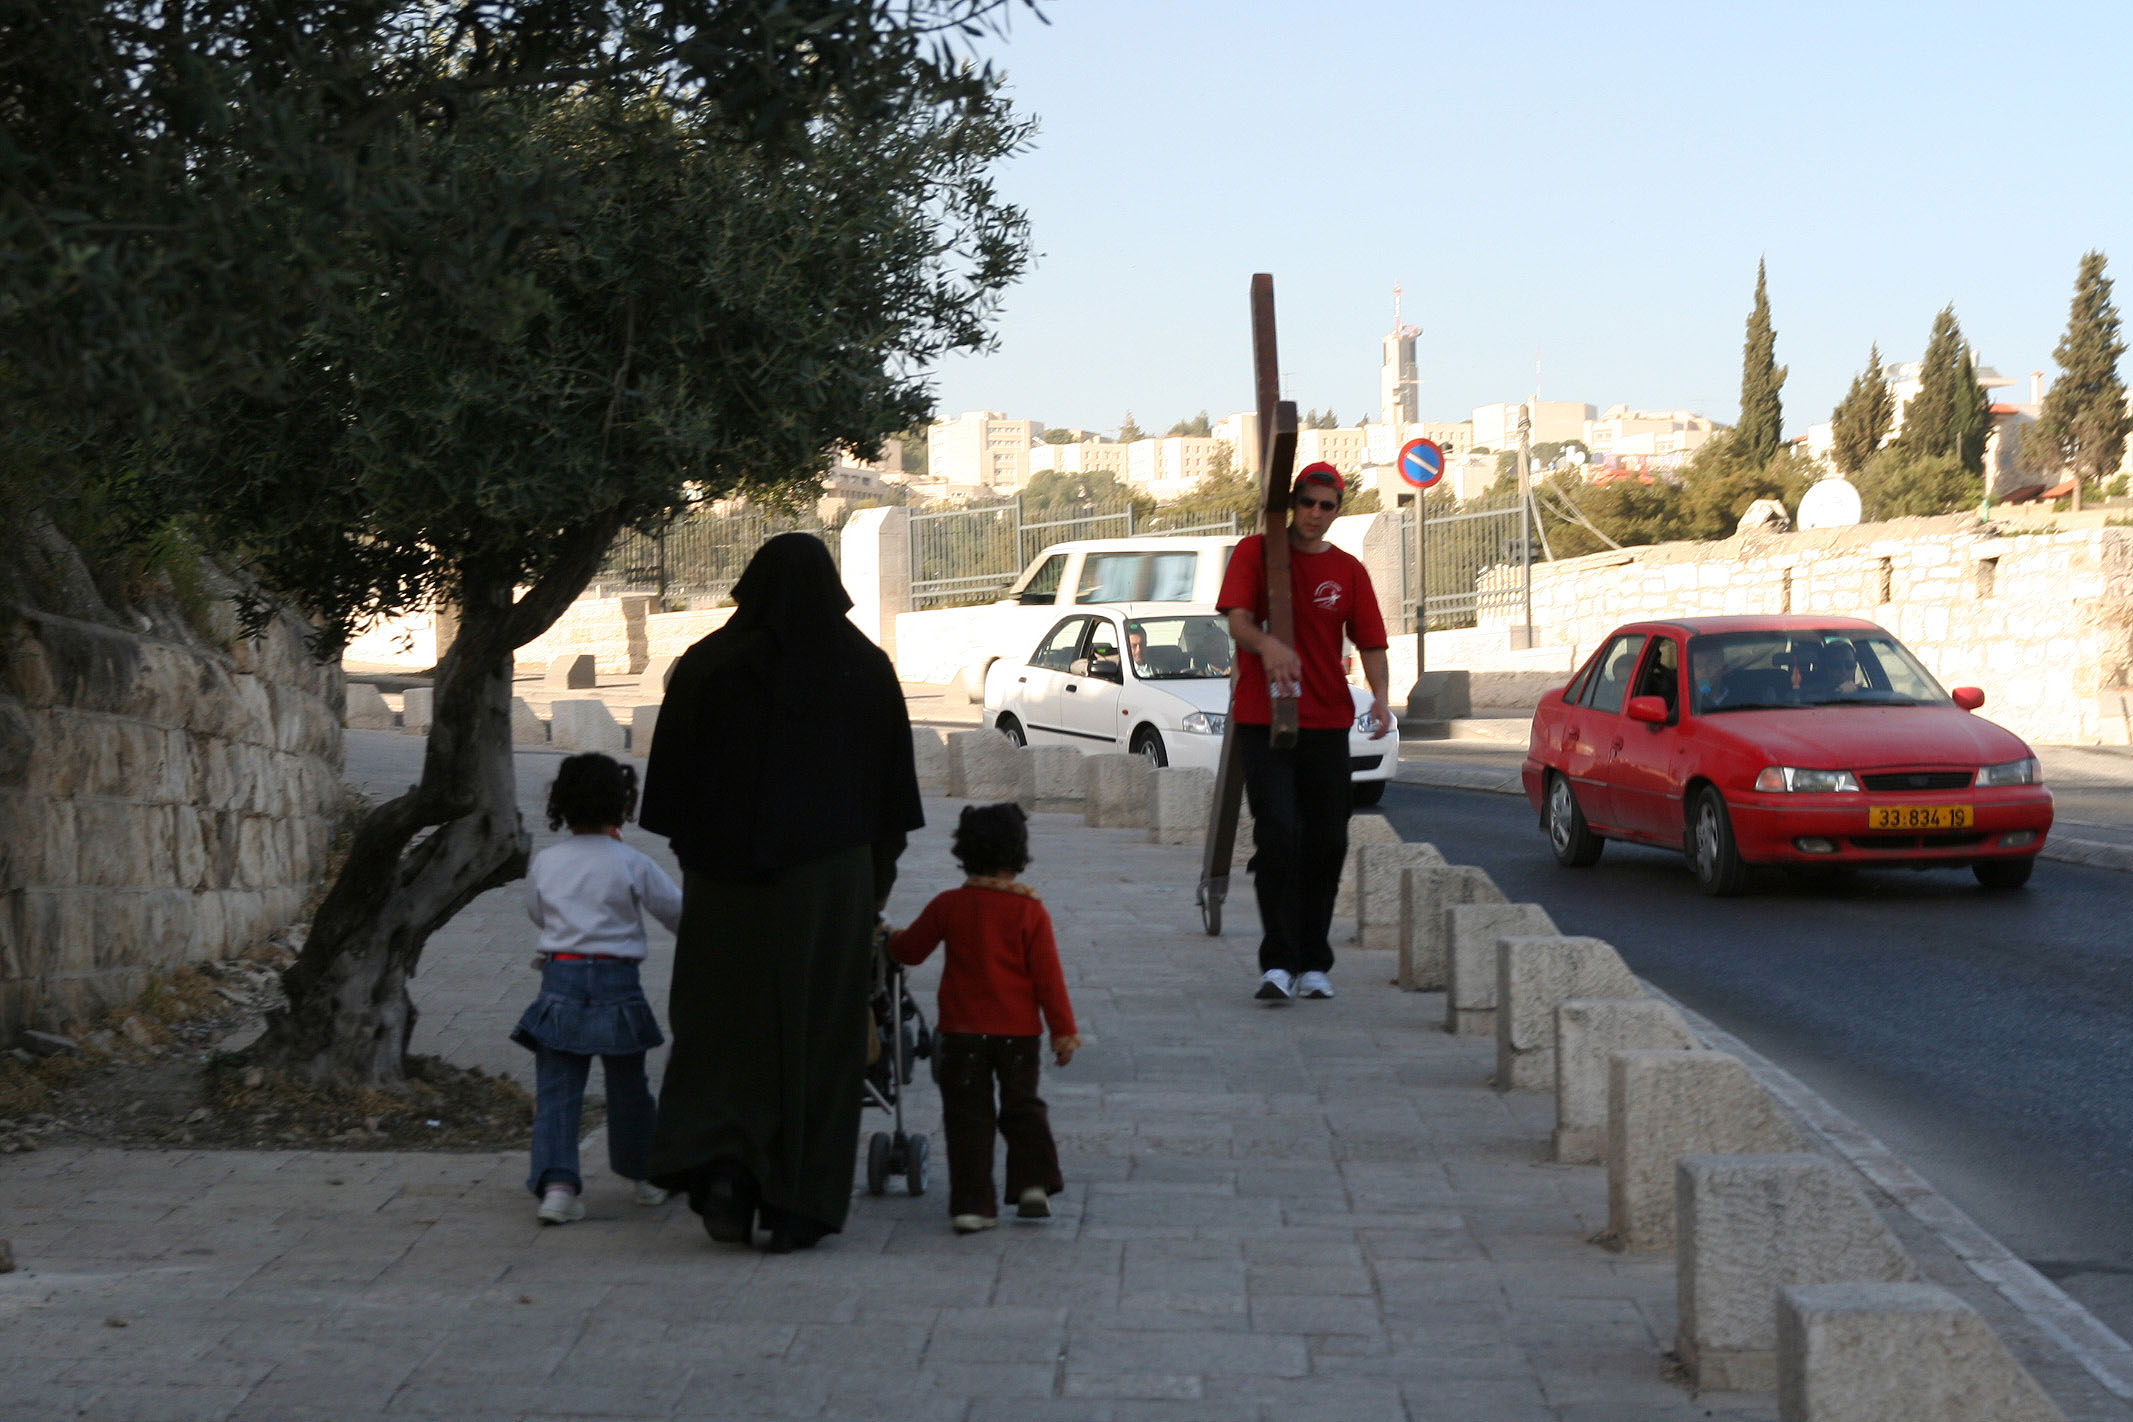 Counties evangelist Clive Cornish walks with his cross through Jerusalem close to the Mount of Olives. A Muslim family pass by during a project called From Jerusalem to Rome in the Footsteps of the Apostle Paul.